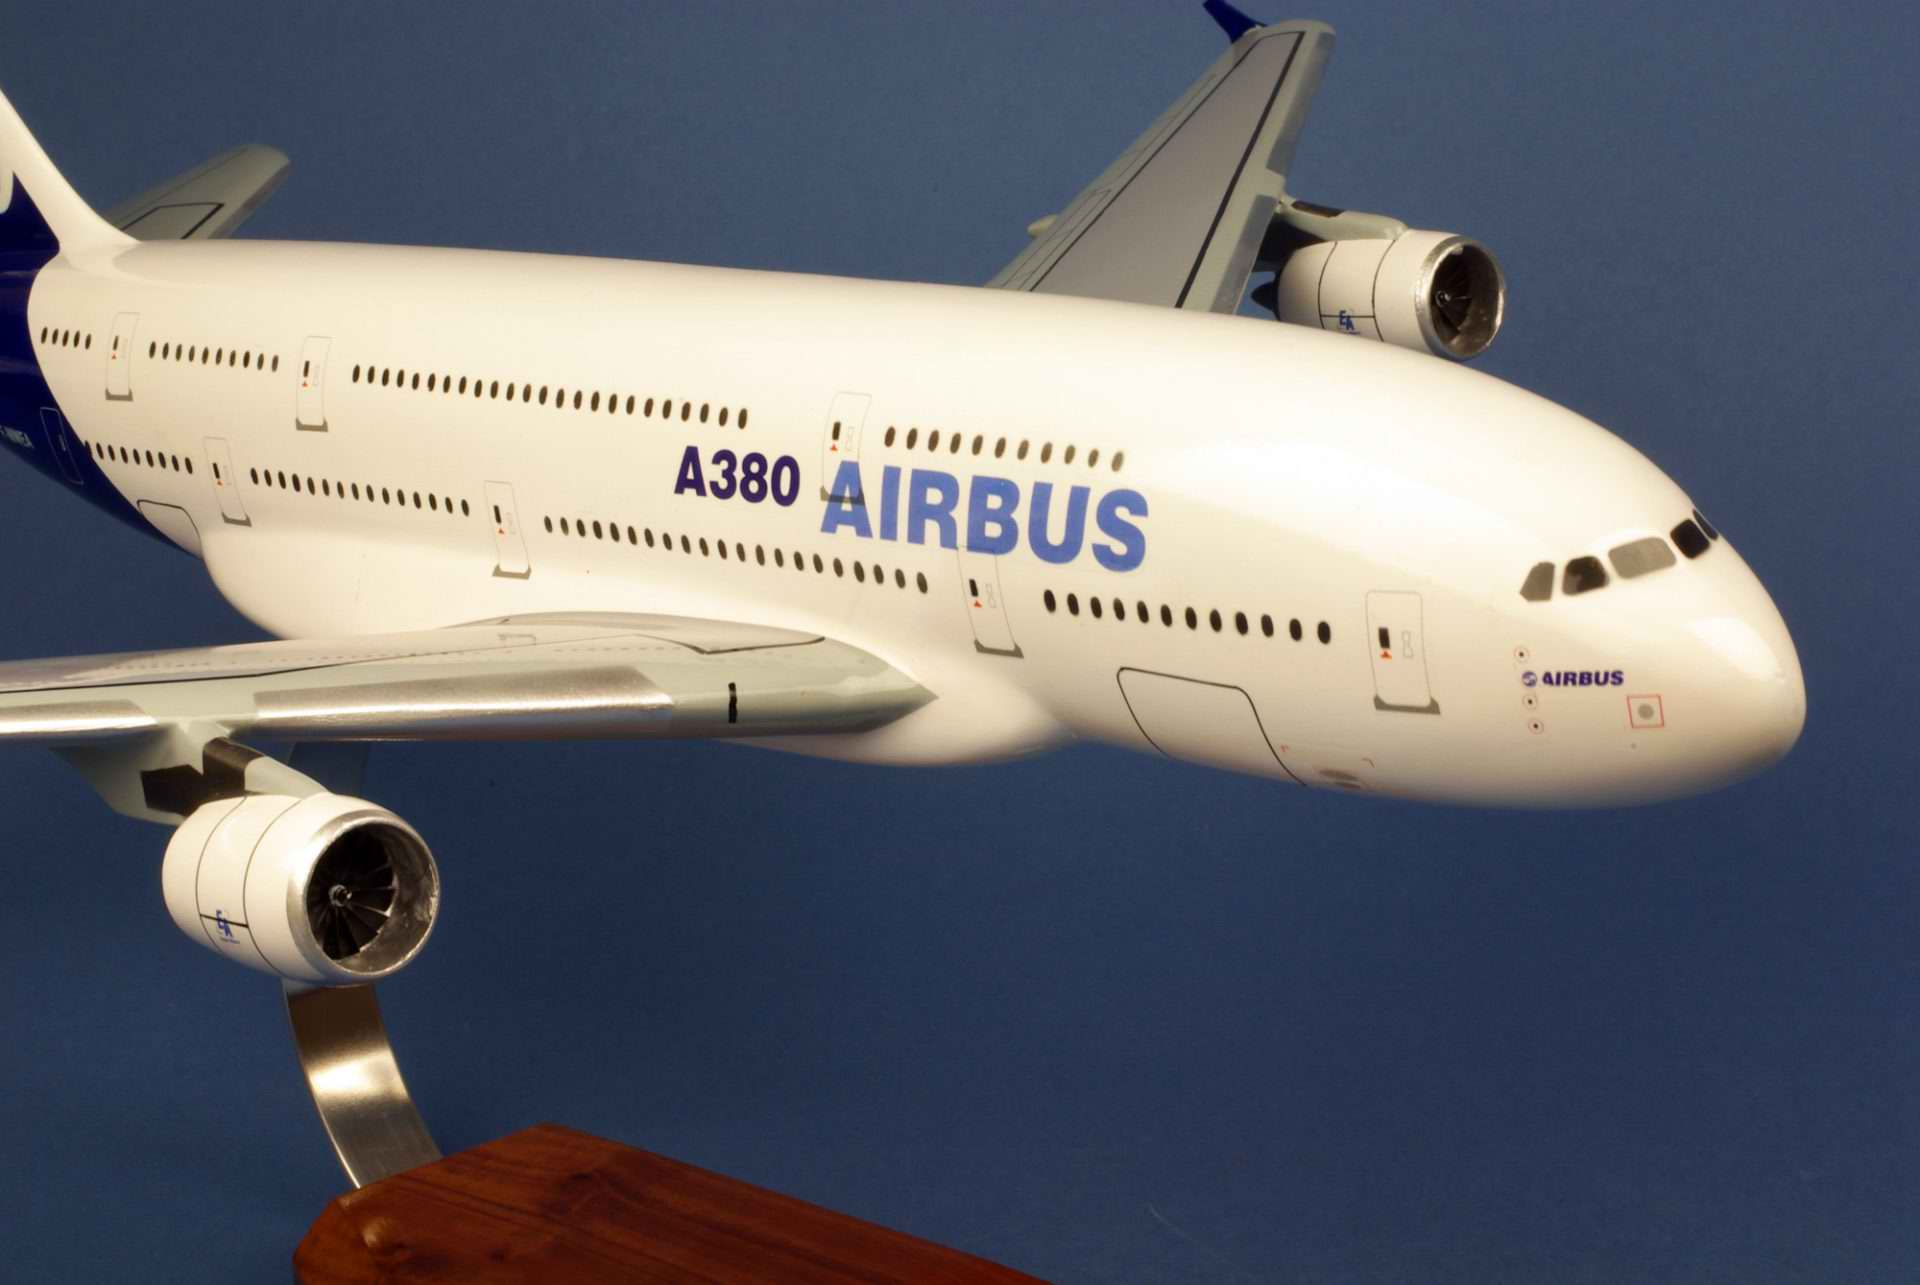 Airbus A380-800 AIRBUS INDUSTRIES